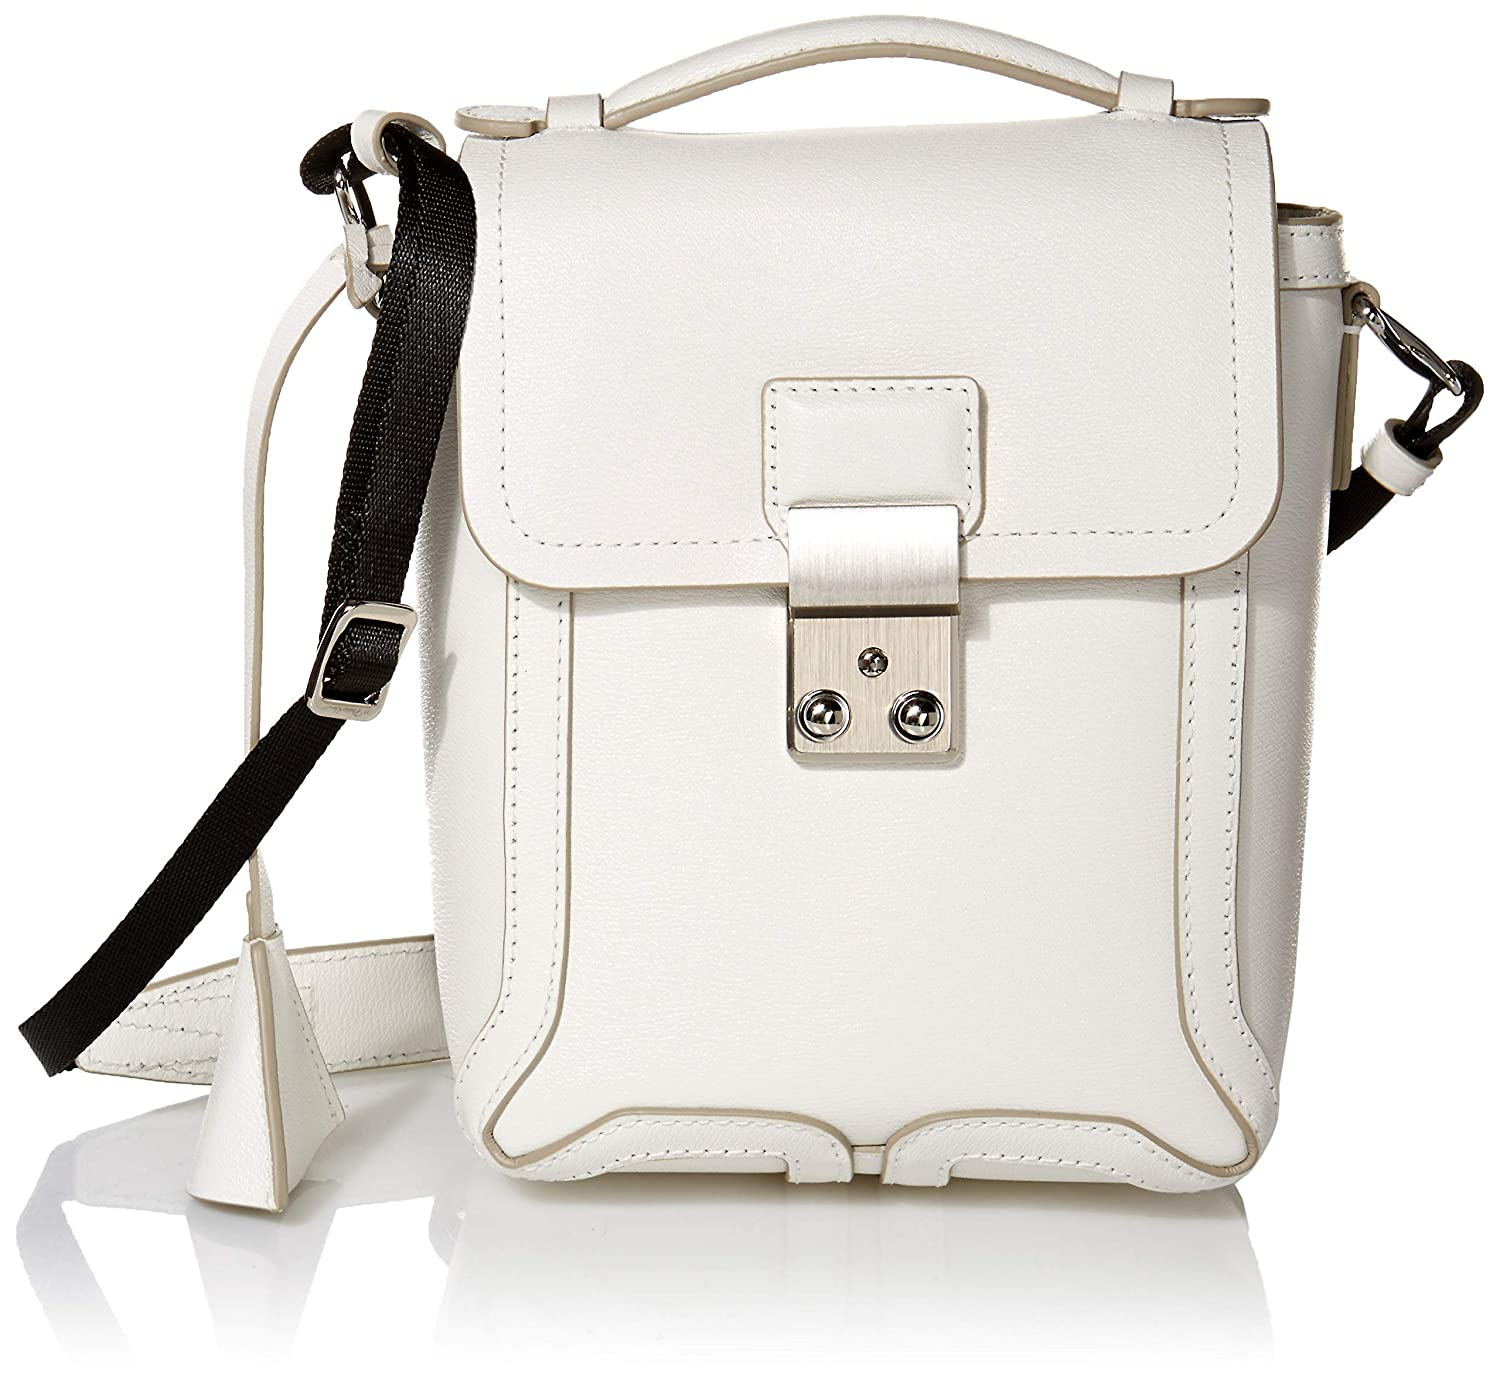 Image of Bags & Cases 3.1 Phillip Lim PASHLI Camera Bag